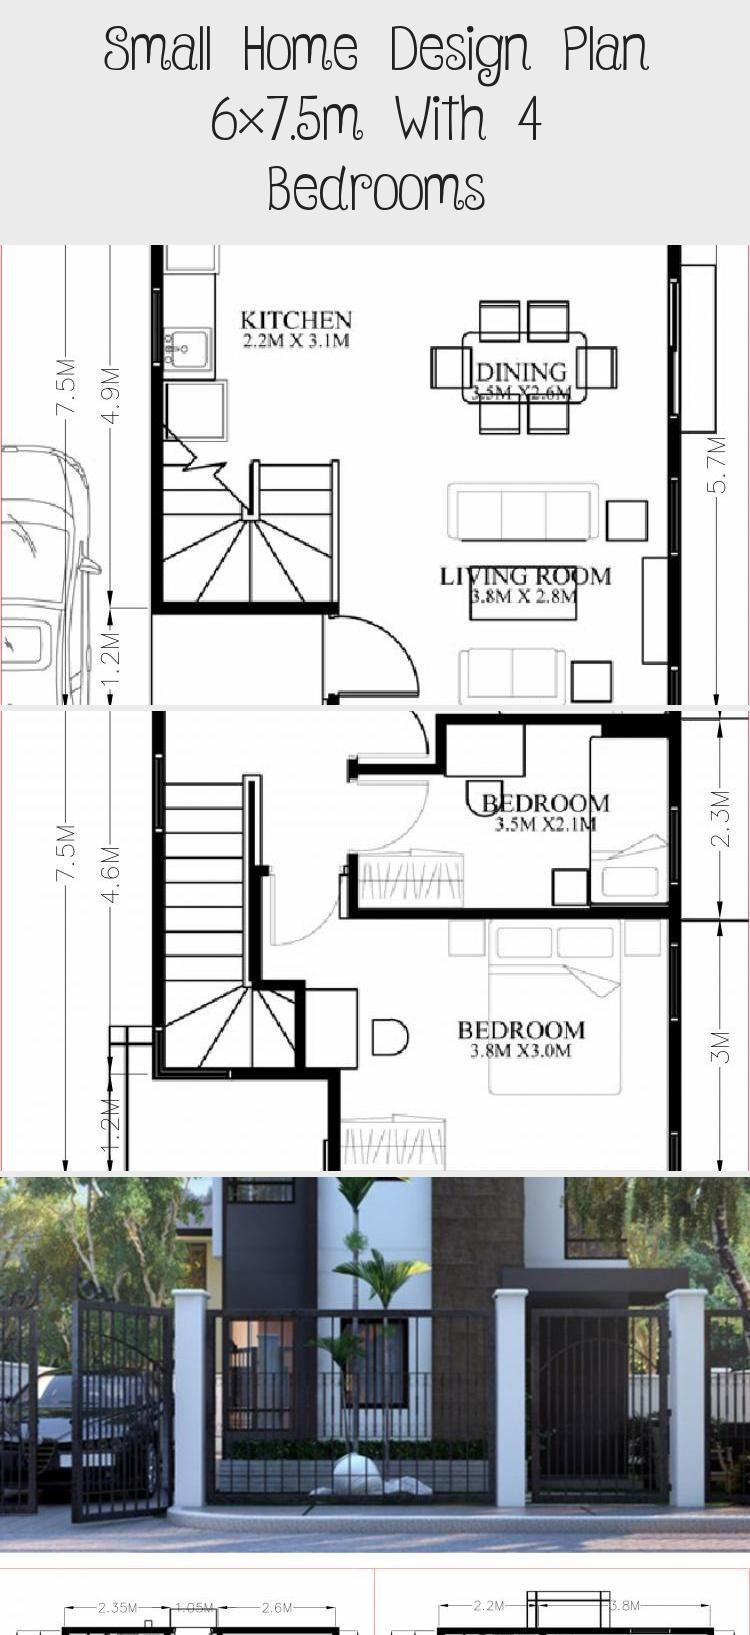 Small Home Design Plan 6x7 5m With 4 Bedrooms Home Design With Plan Smallhouseplansunder1000sqft Smallhouse In 2020 Home Design Plan Small House Design Small House